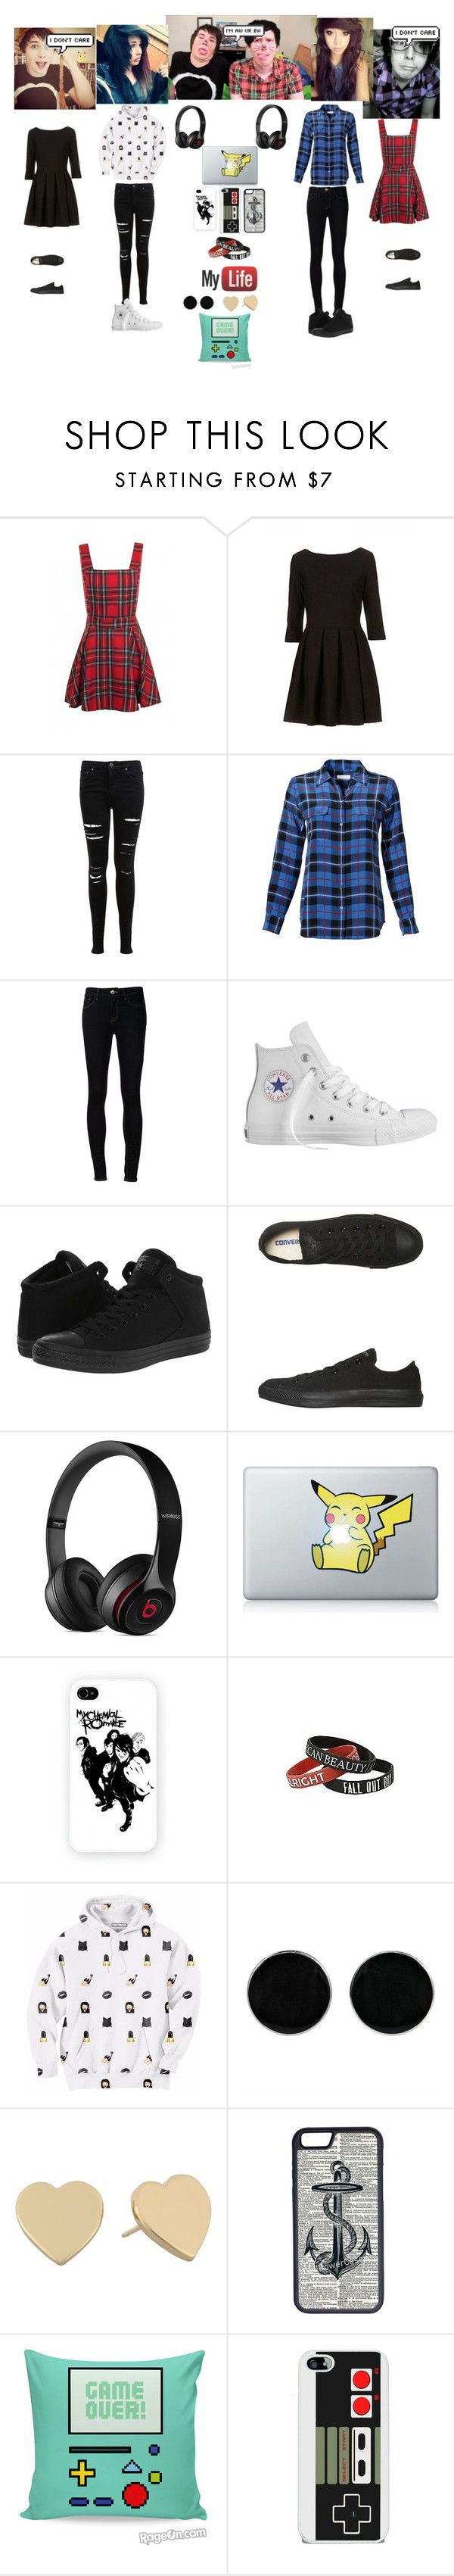 """Genderbend Dan and Phil"" by jana-c ❤ liked on Polyvore featuring Miss Selfridge, Equipment, Ström, Converse, Beats by Dr. Dre, Aloha From Deer, AeraVida, Kate Spade and CellPowerCases"